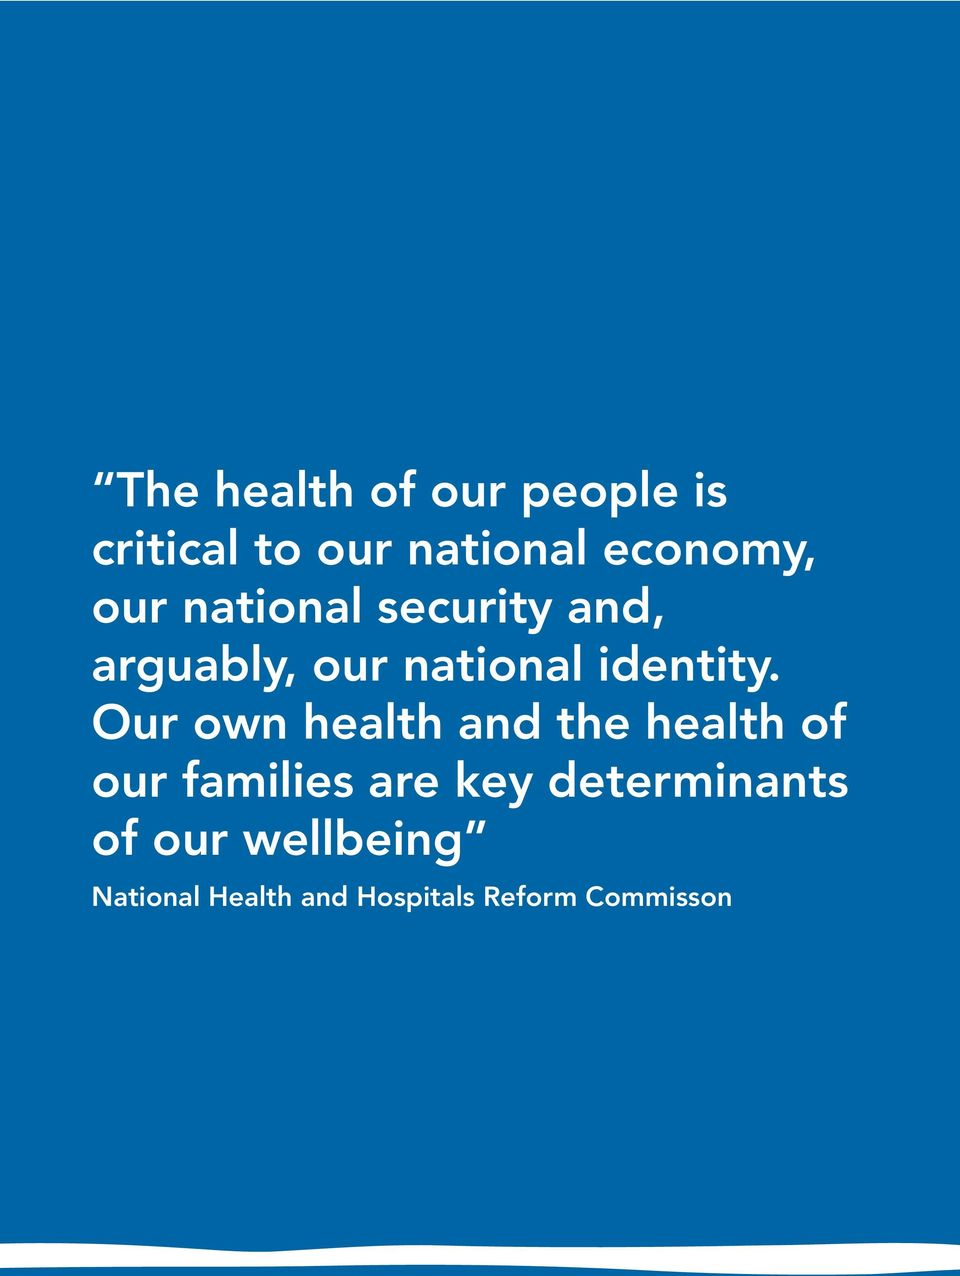 Our own health and the health of our families are key